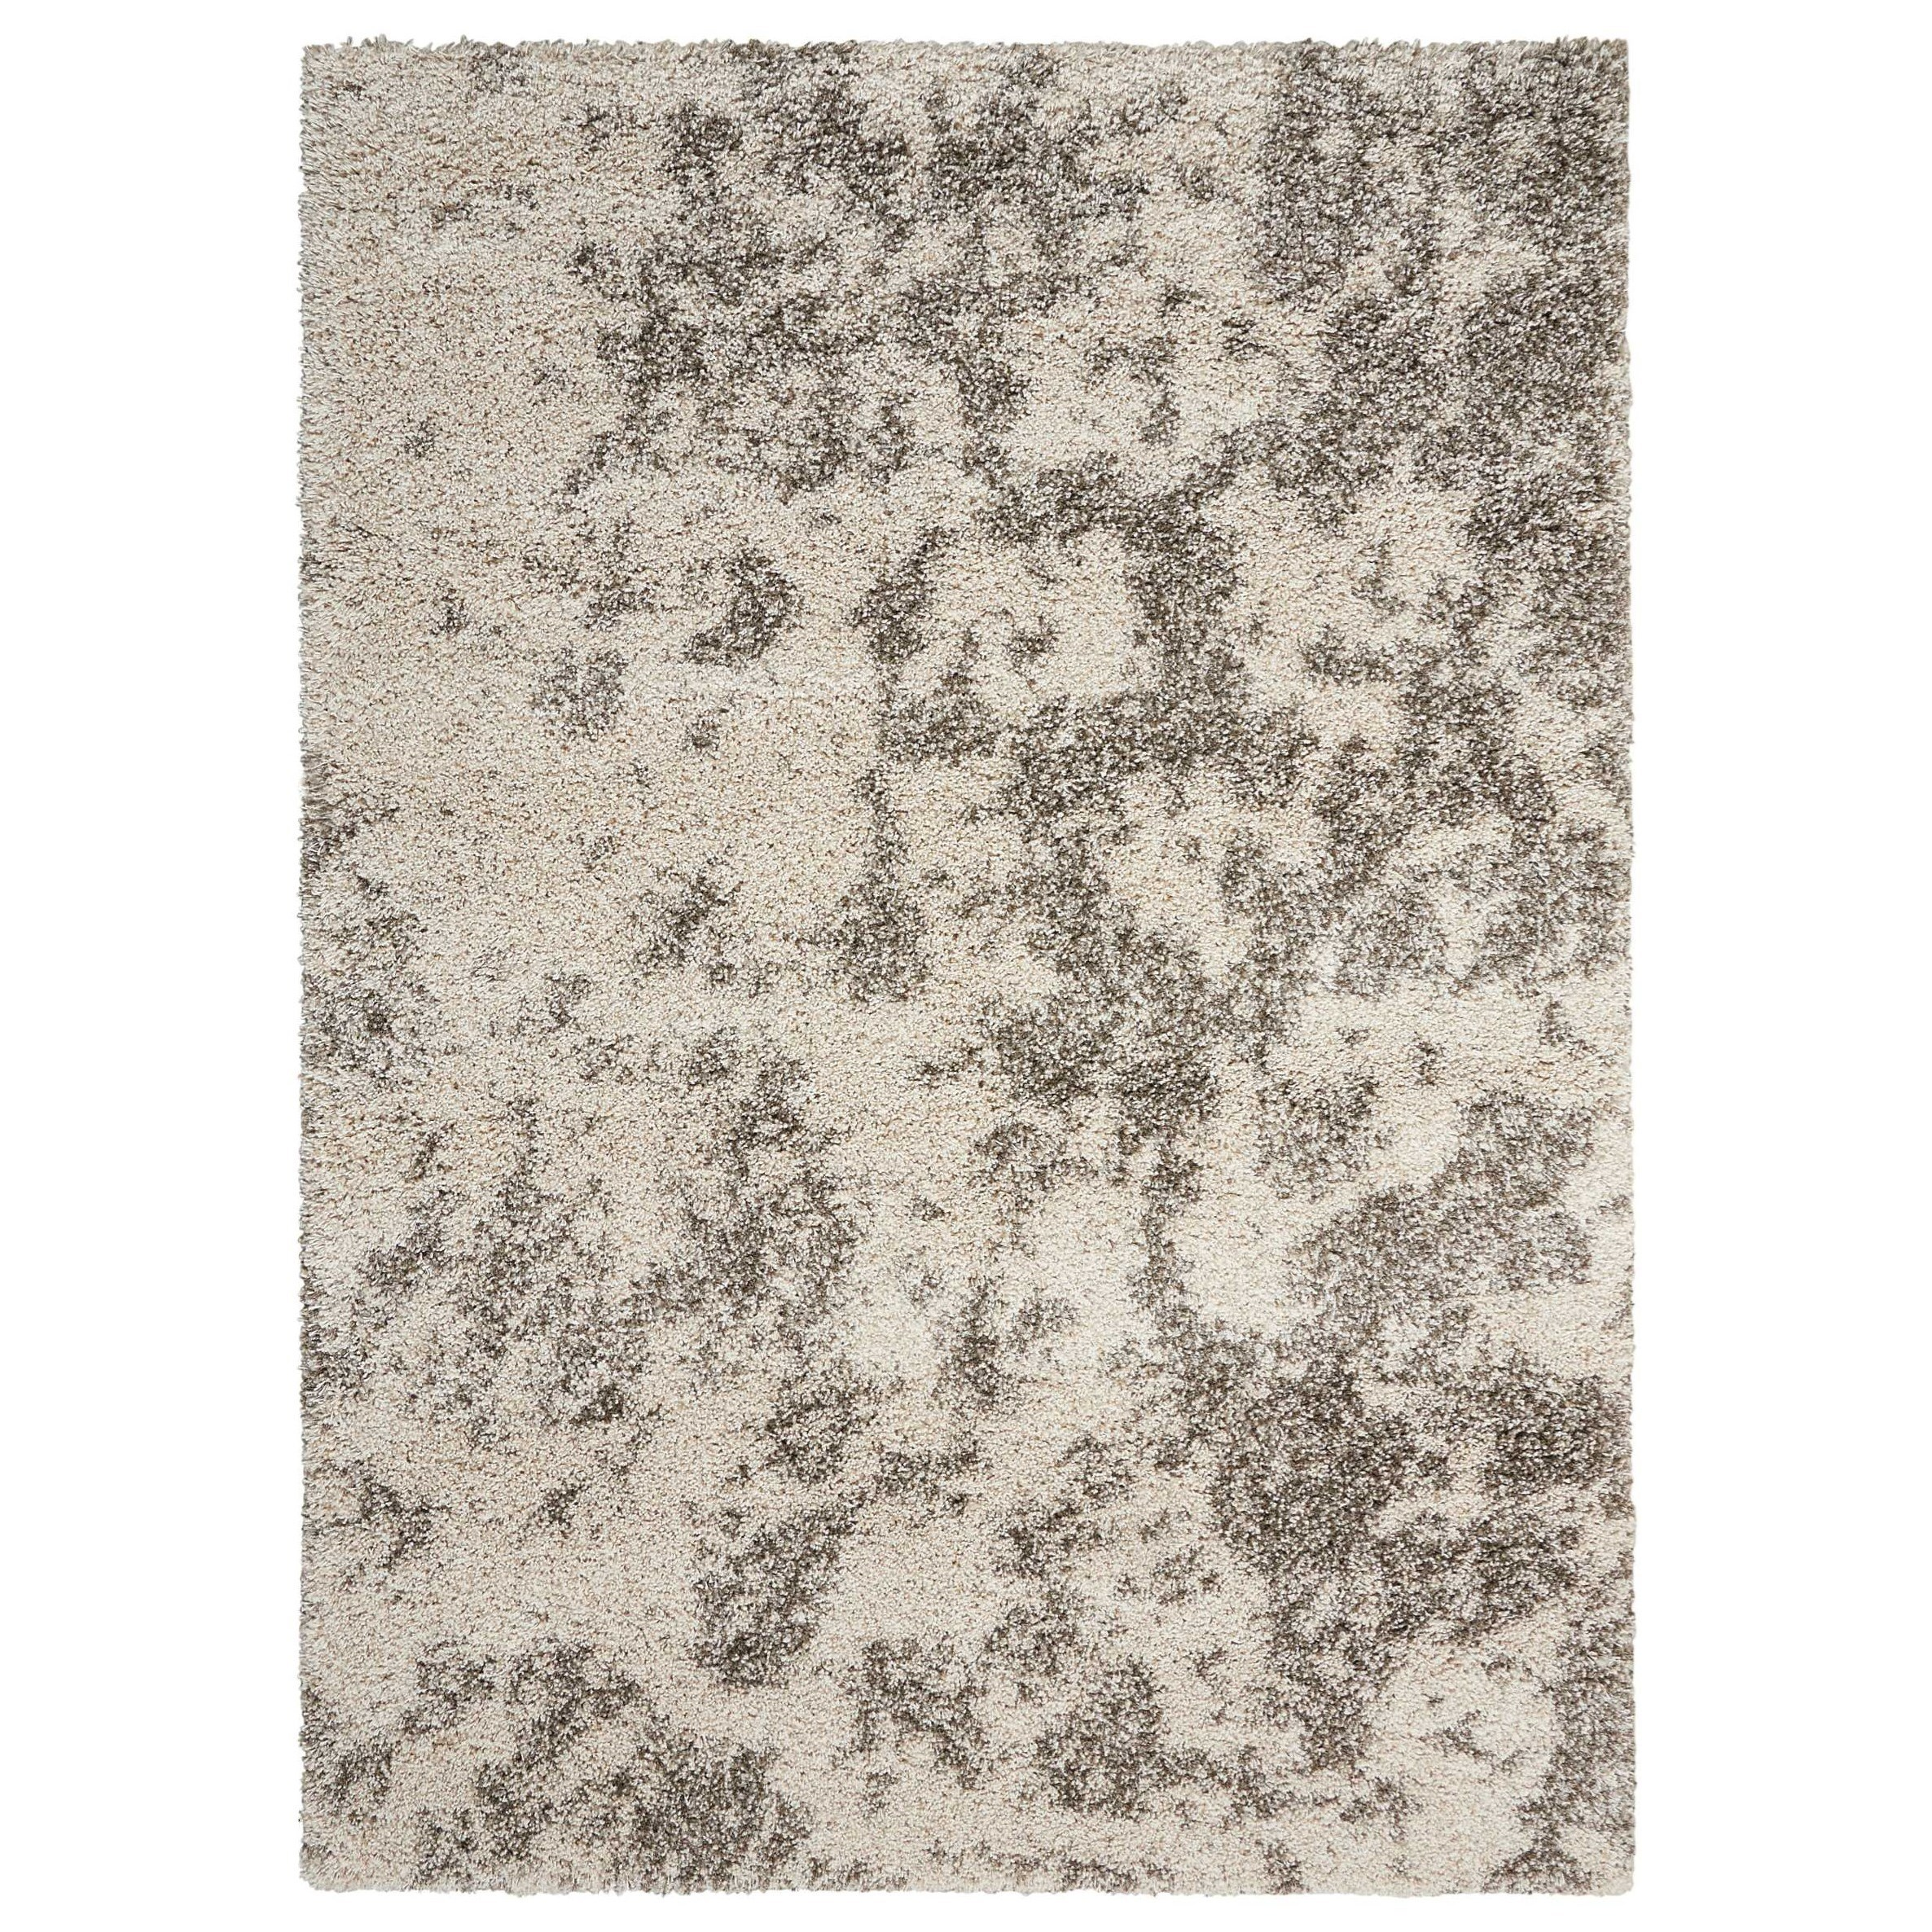 Amore Amore AMOR4 Green 5'x8' Area Rug by Nourison at Home Collections Furniture